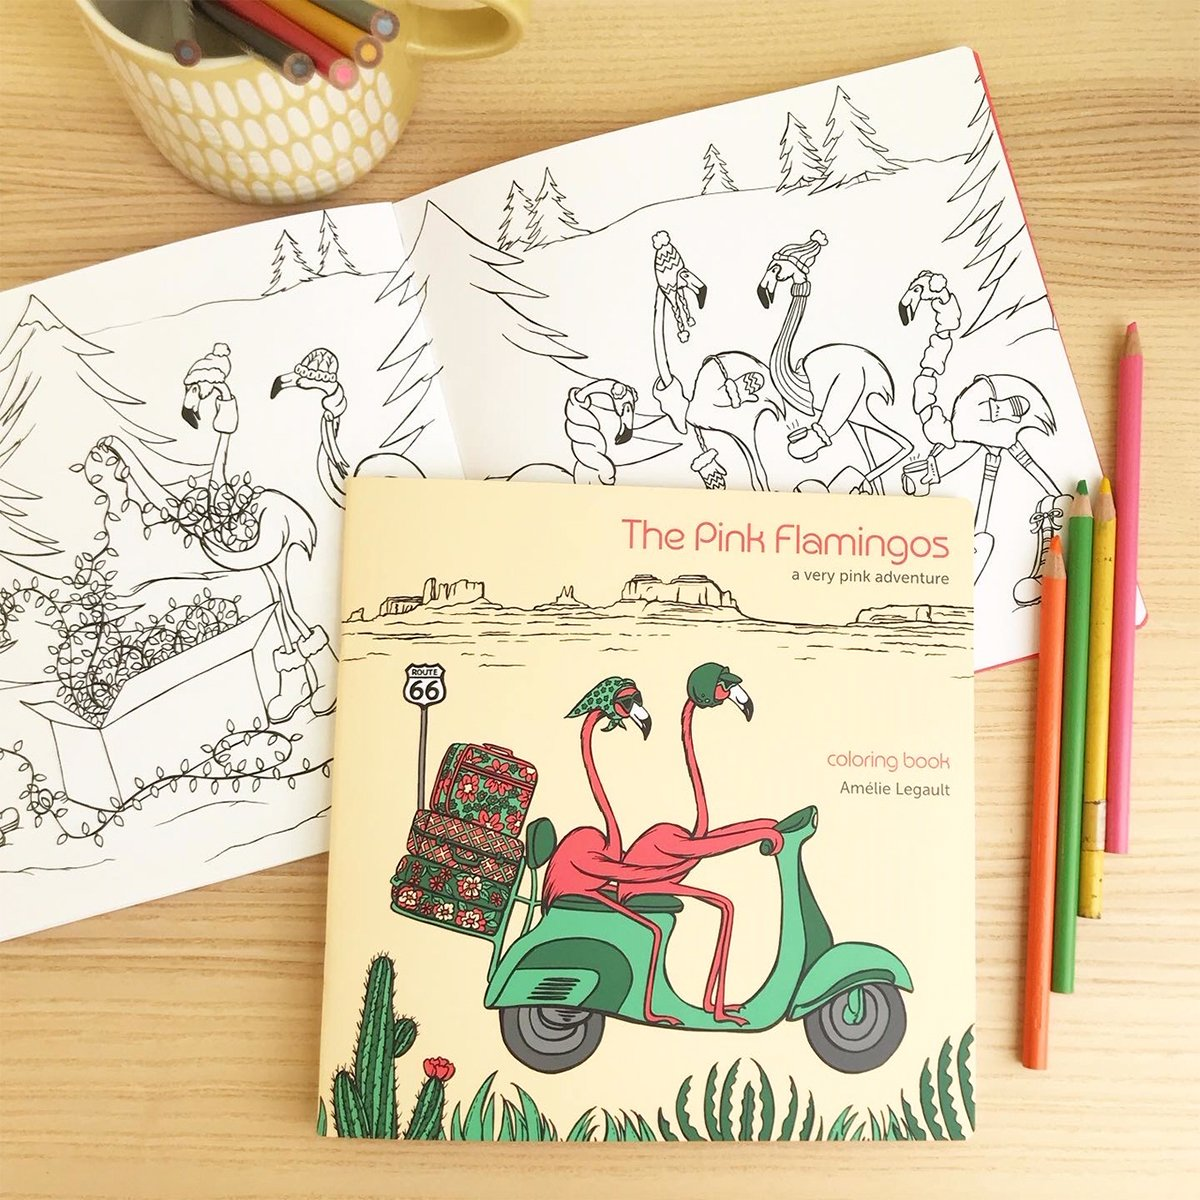 Pink flamingo coloring book, flamingo illustration, coloring for kids, coloring for adult, colouring book, Amelie legault, vespa, scooter, route 66, roadtrip, made in canada